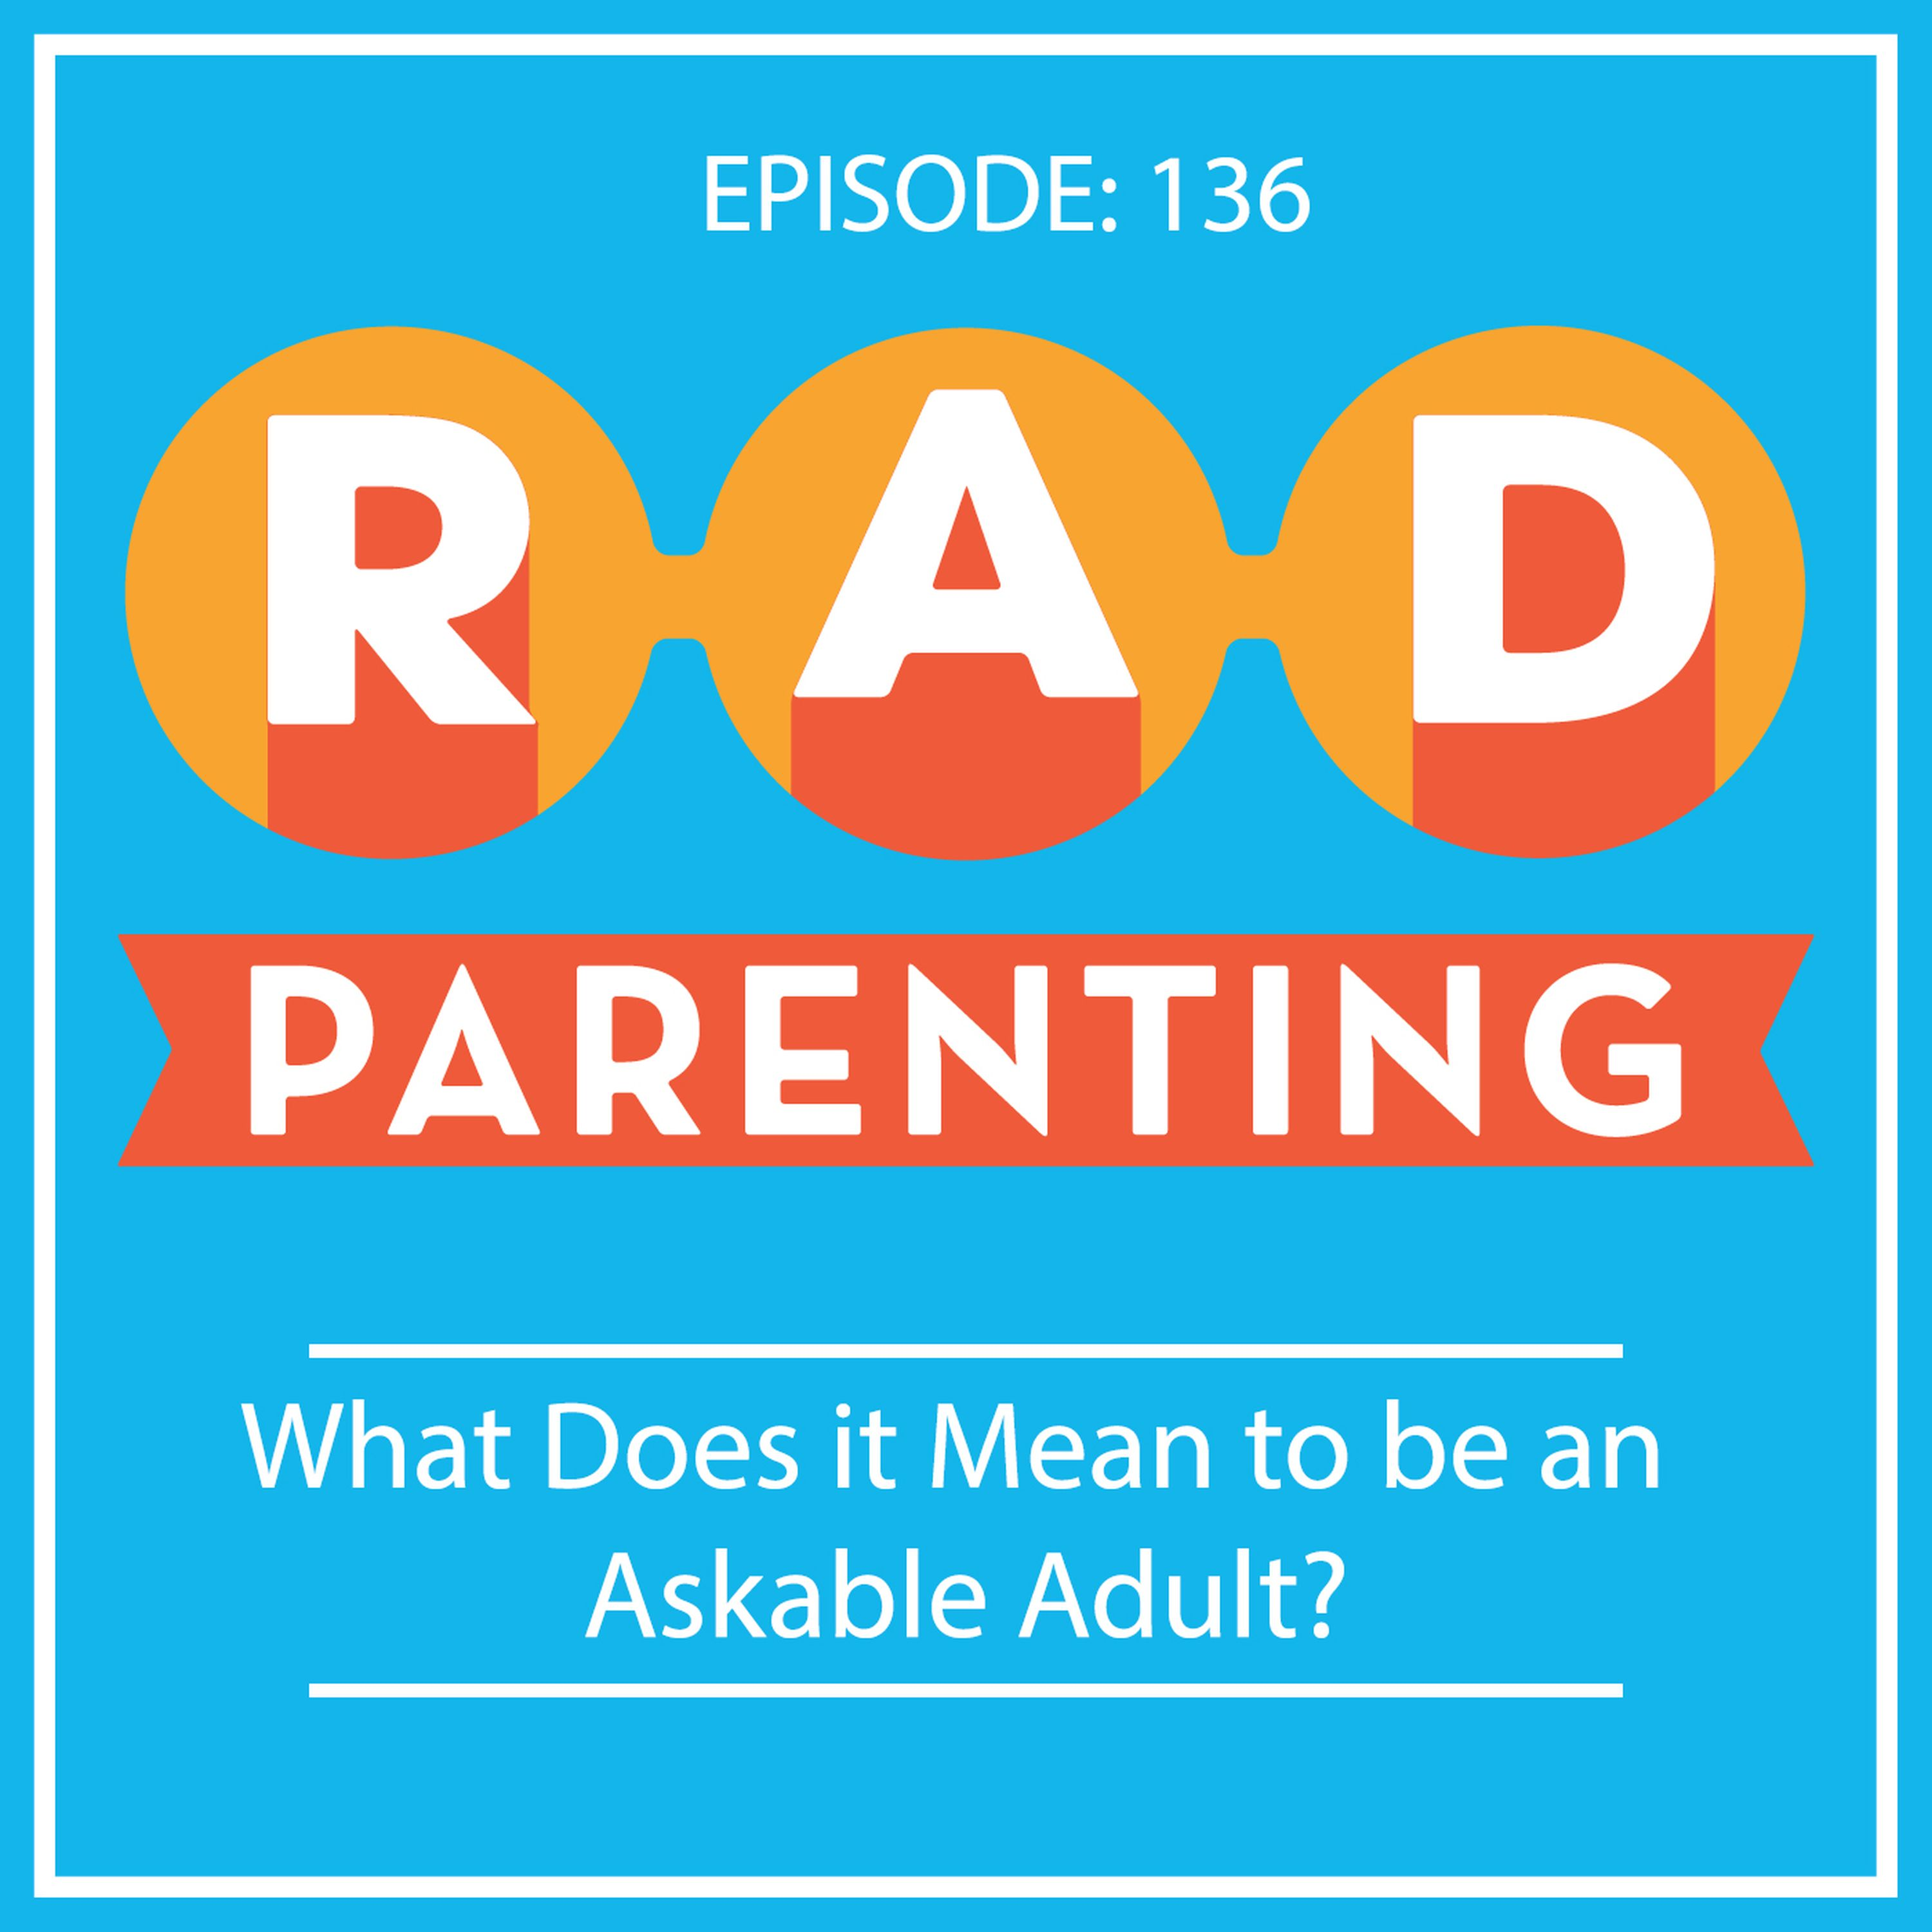 What Does it Mean to be an Askable Adult?